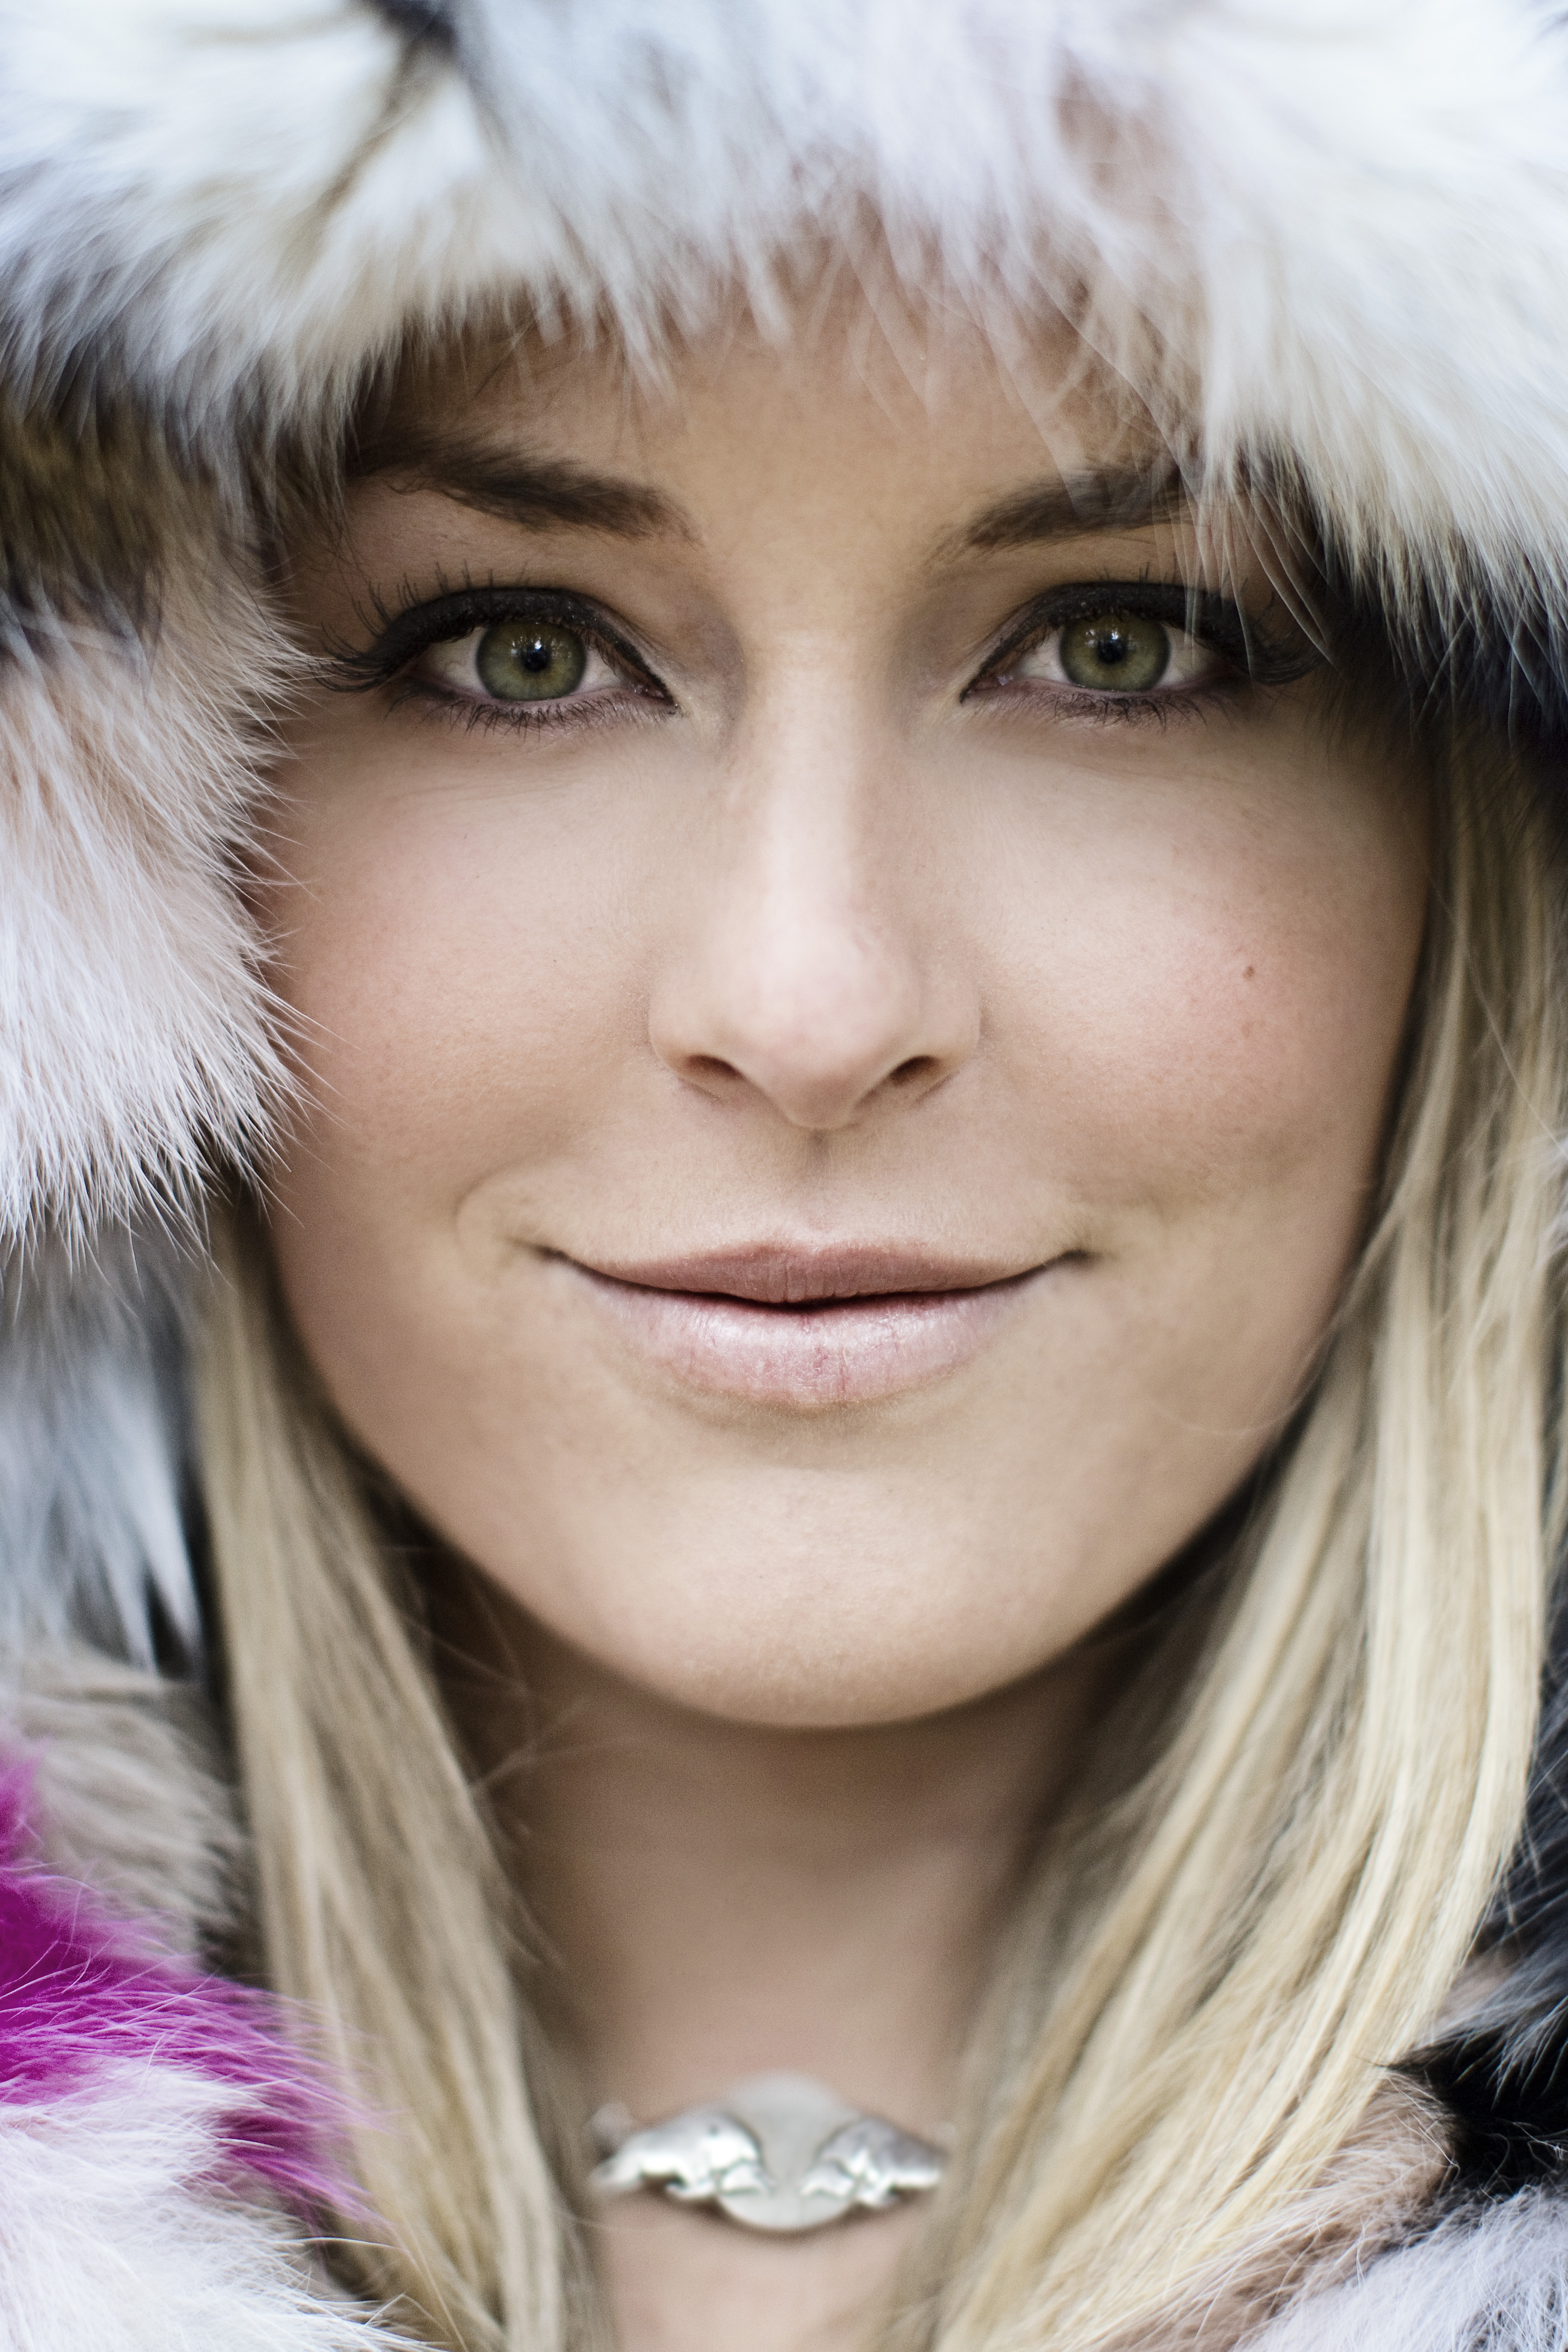 videos fromabout Lindsey Vonn containing interviews highlights training clips